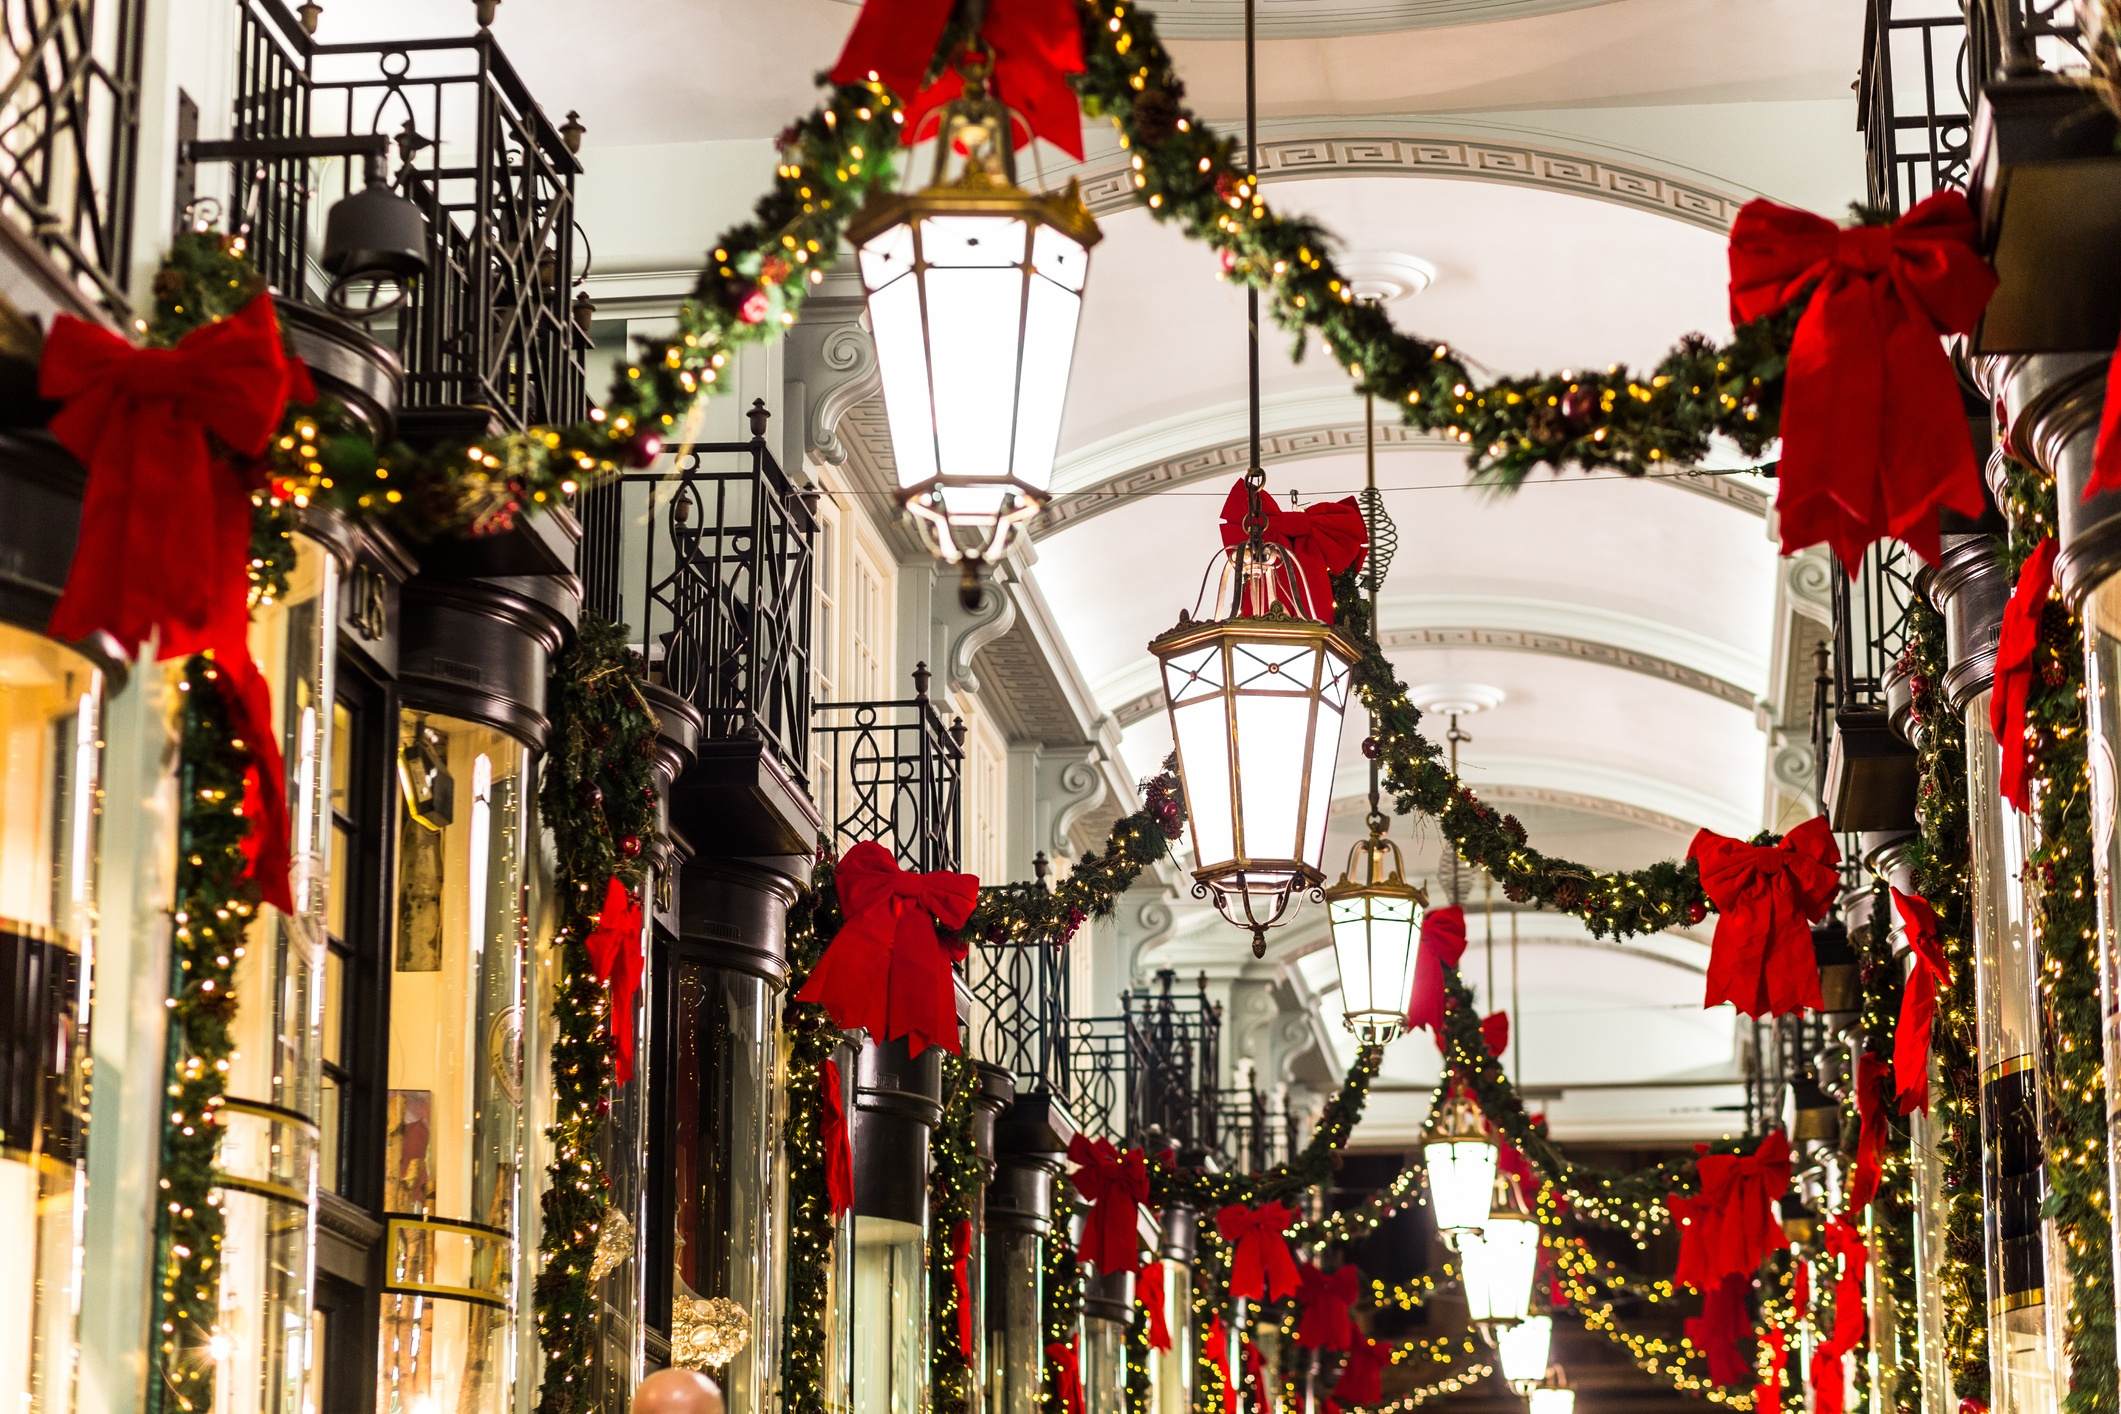 iStock-524925837_London Christmas Shopping Arcade.jpg